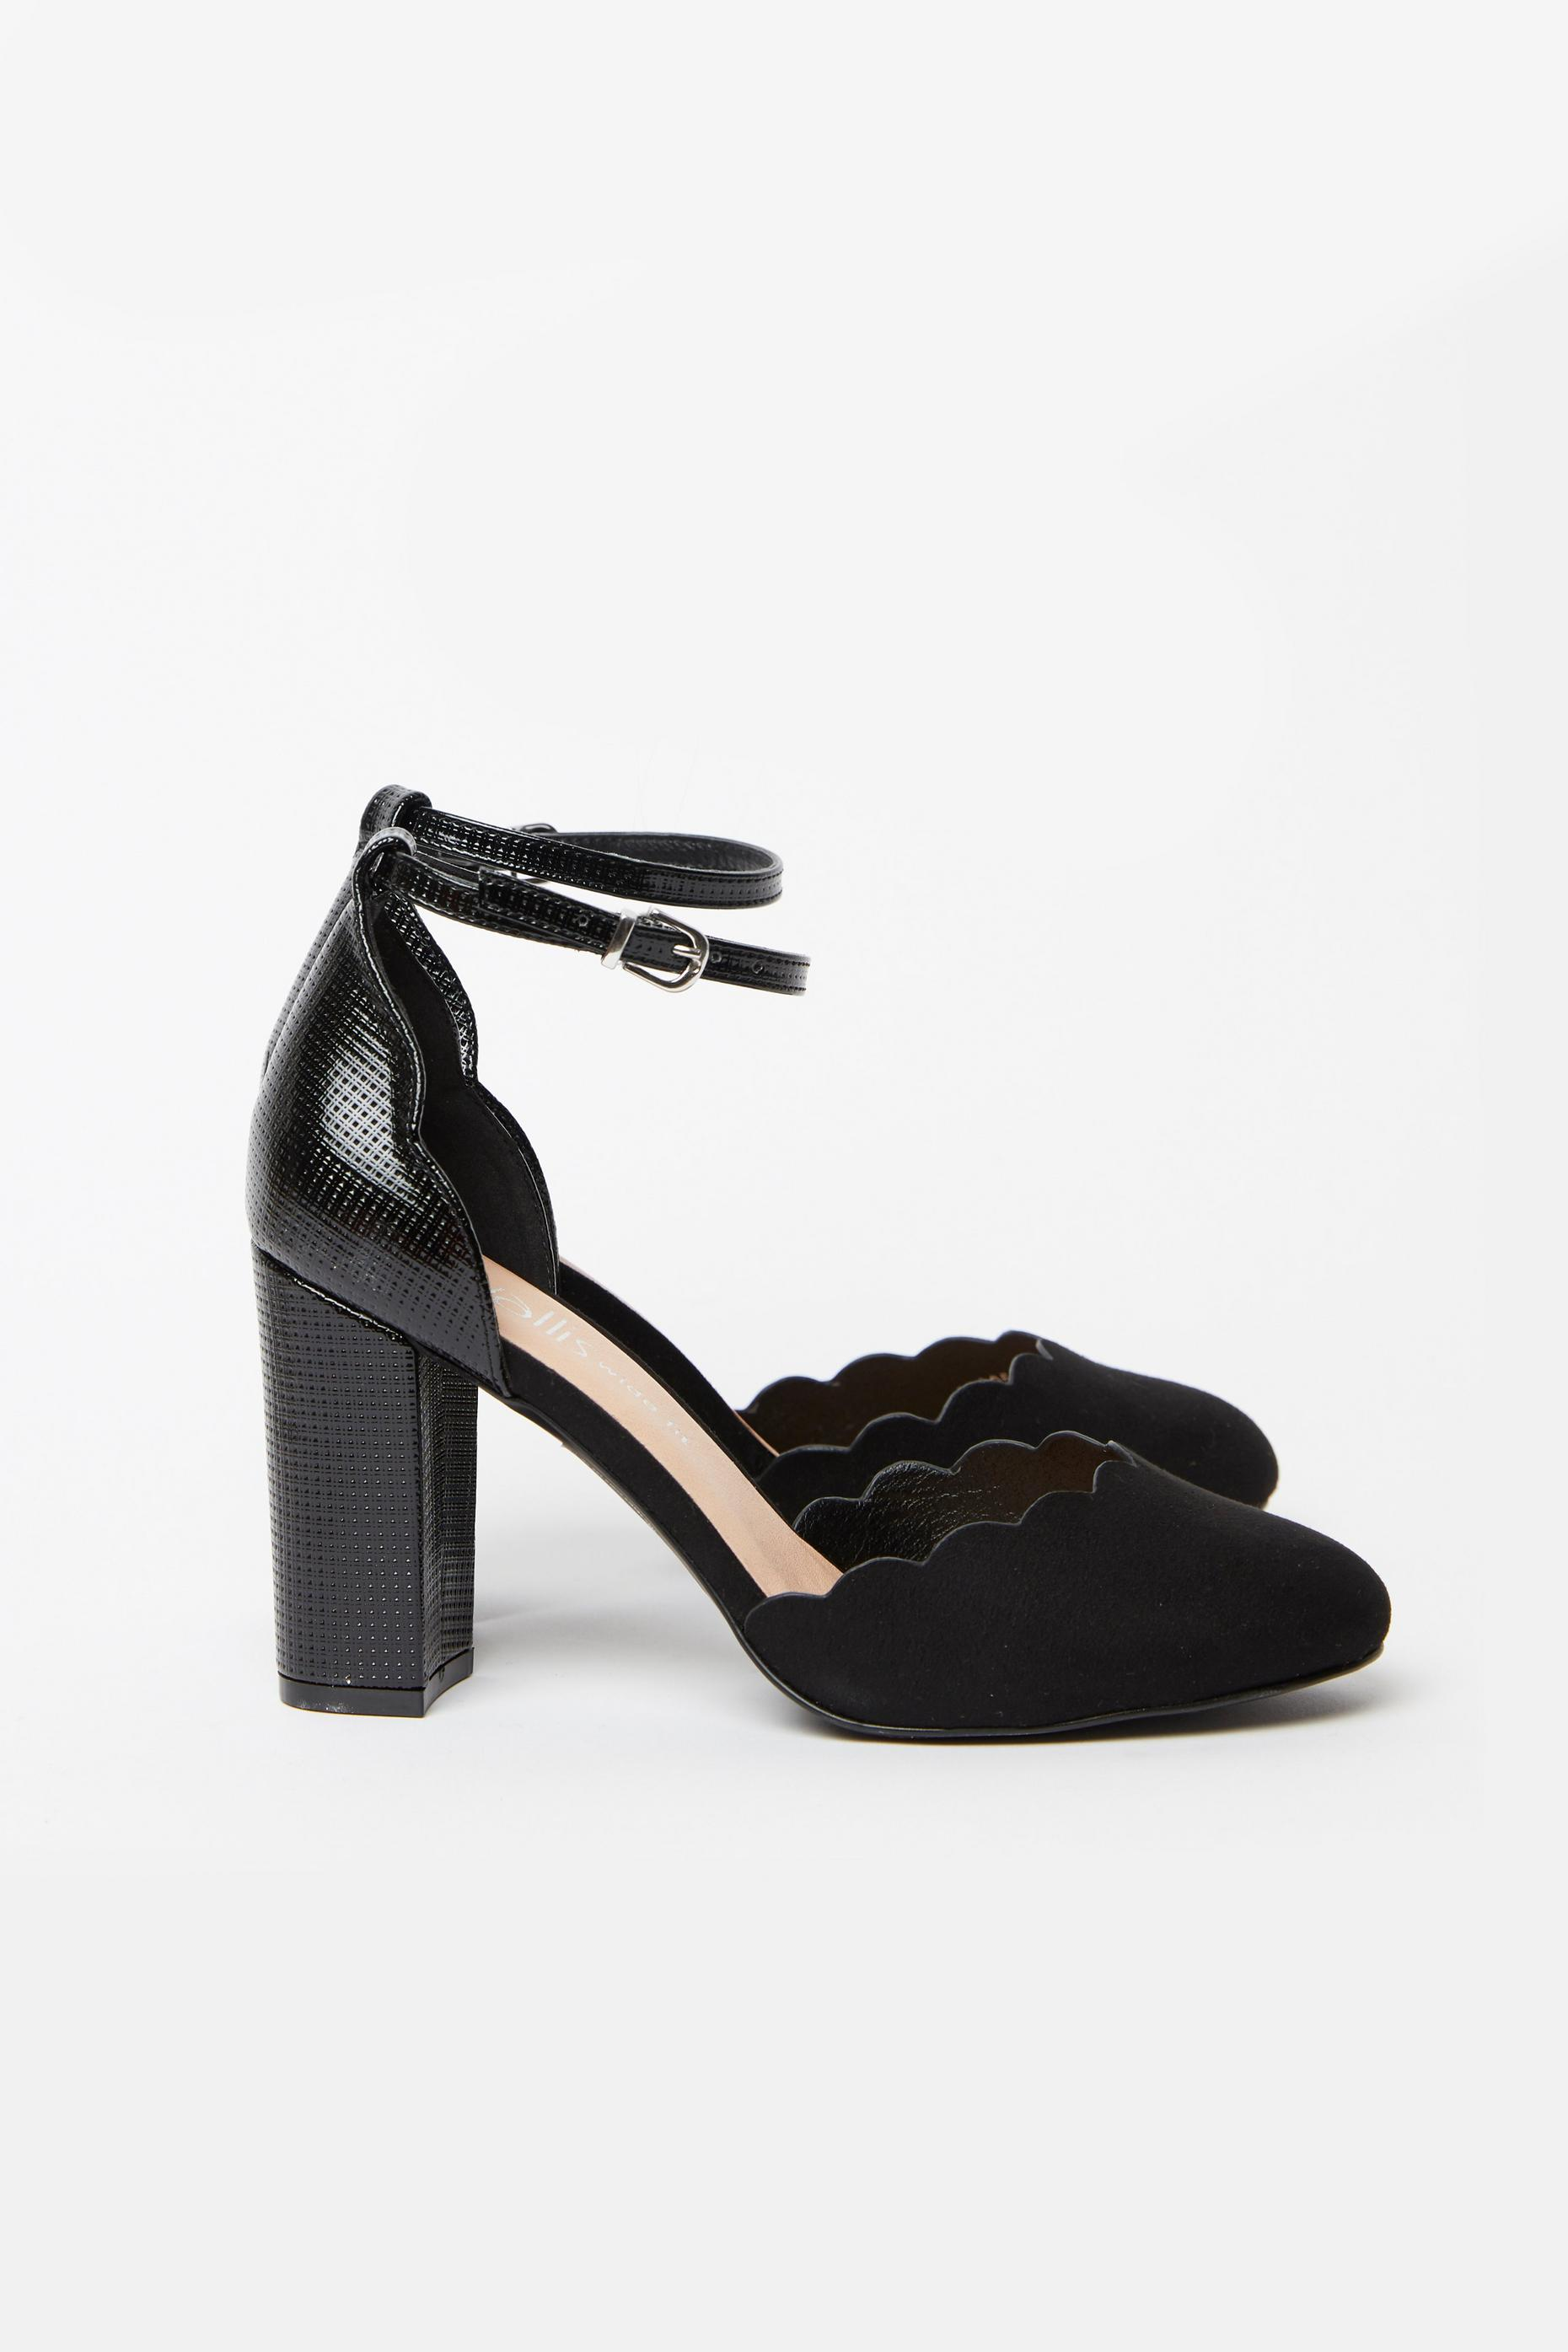 WIDE FIT Black Scallop Edge Heel